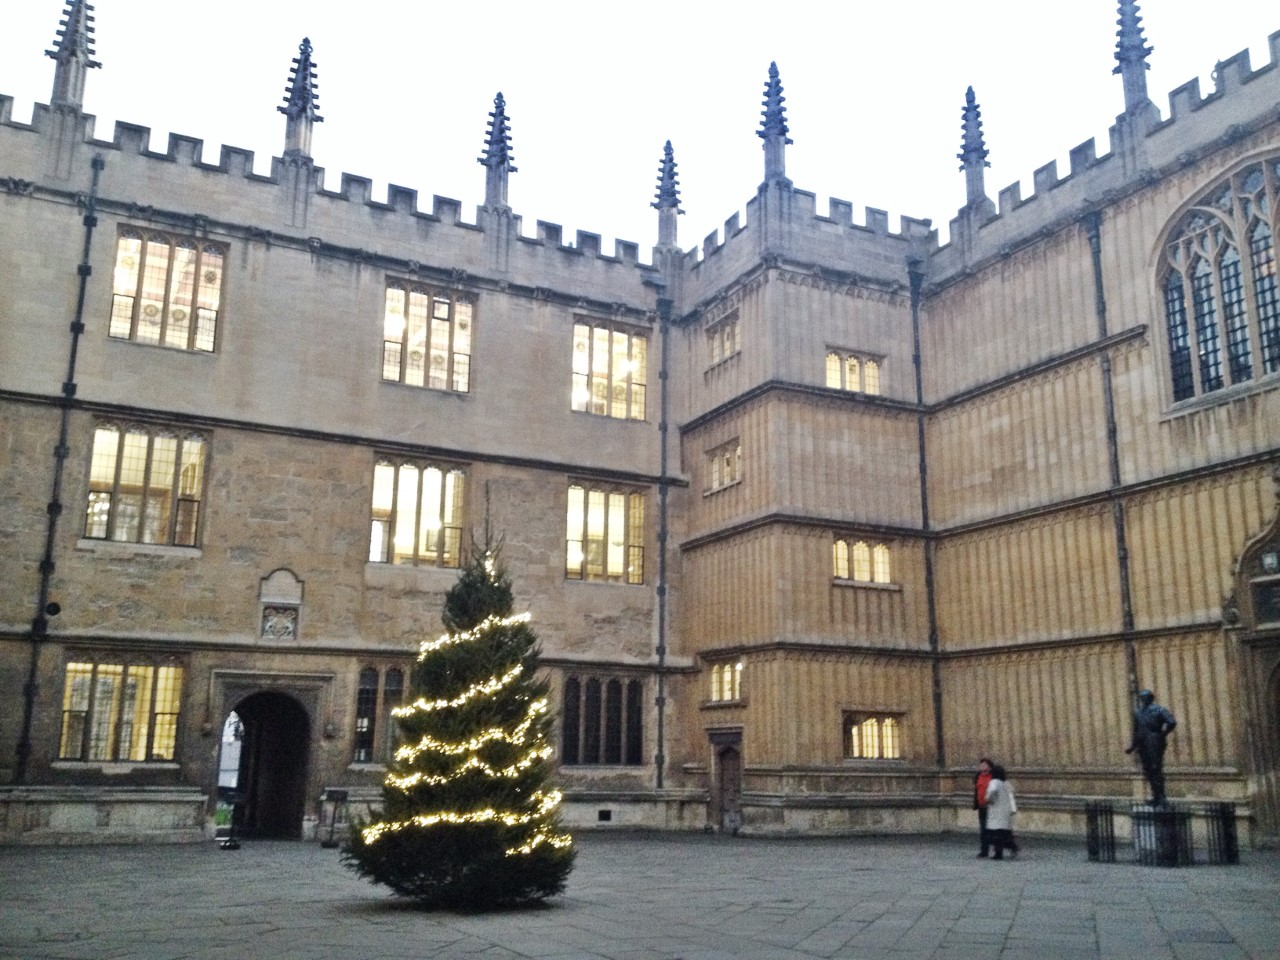 https://i1.wp.com/blogs.bodleian.ox.ac.uk/oxfordtrainees/wp-content/uploads/sites/133/2016/12/Bod-Christmas-Tree-1.jpg